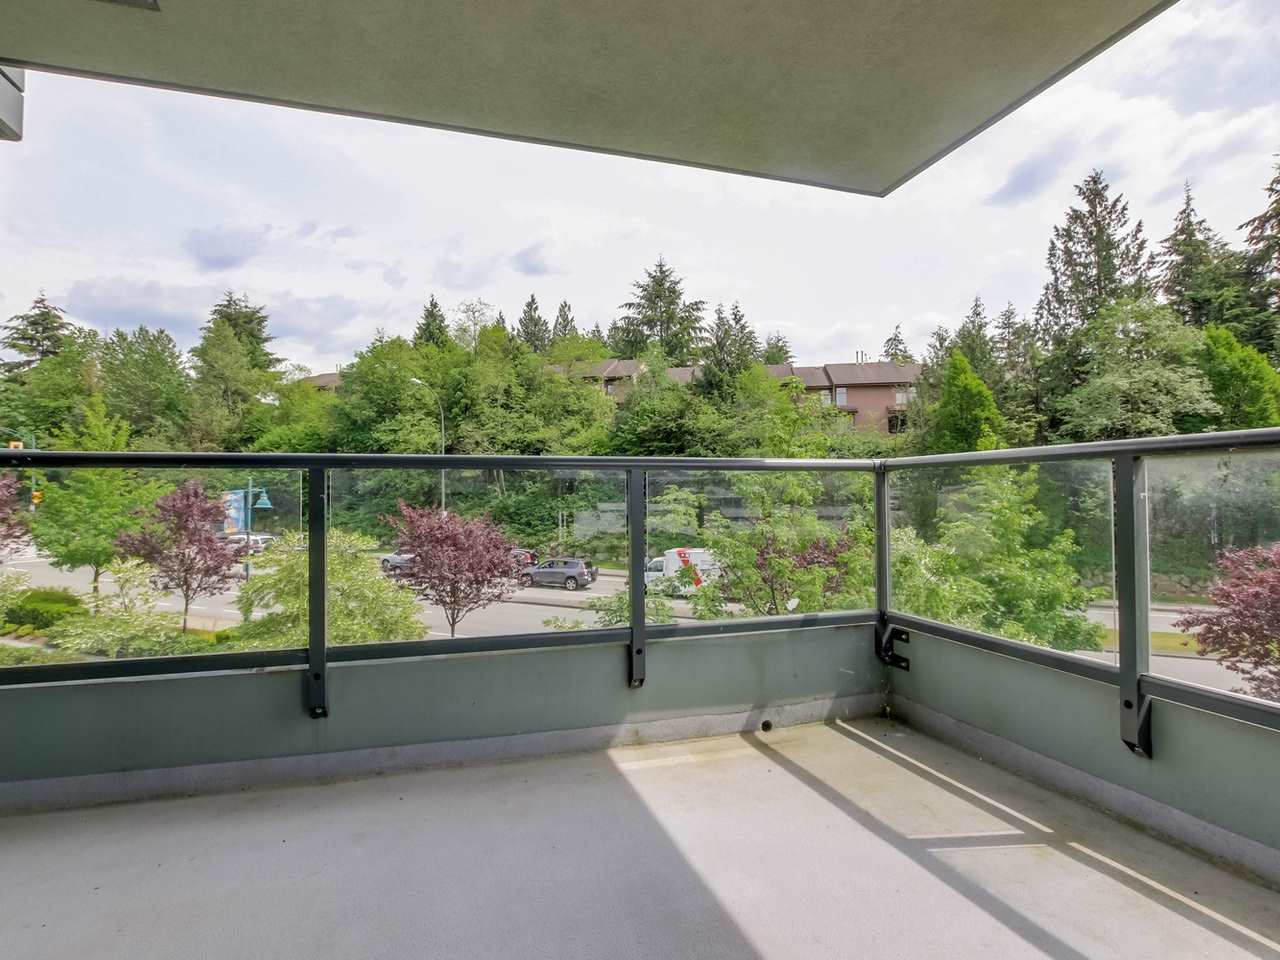 Photo 8: 203 288 UNGLESS WAY in Port Moody: Port Moody Centre Condo for sale : MLS(r) # R2071333